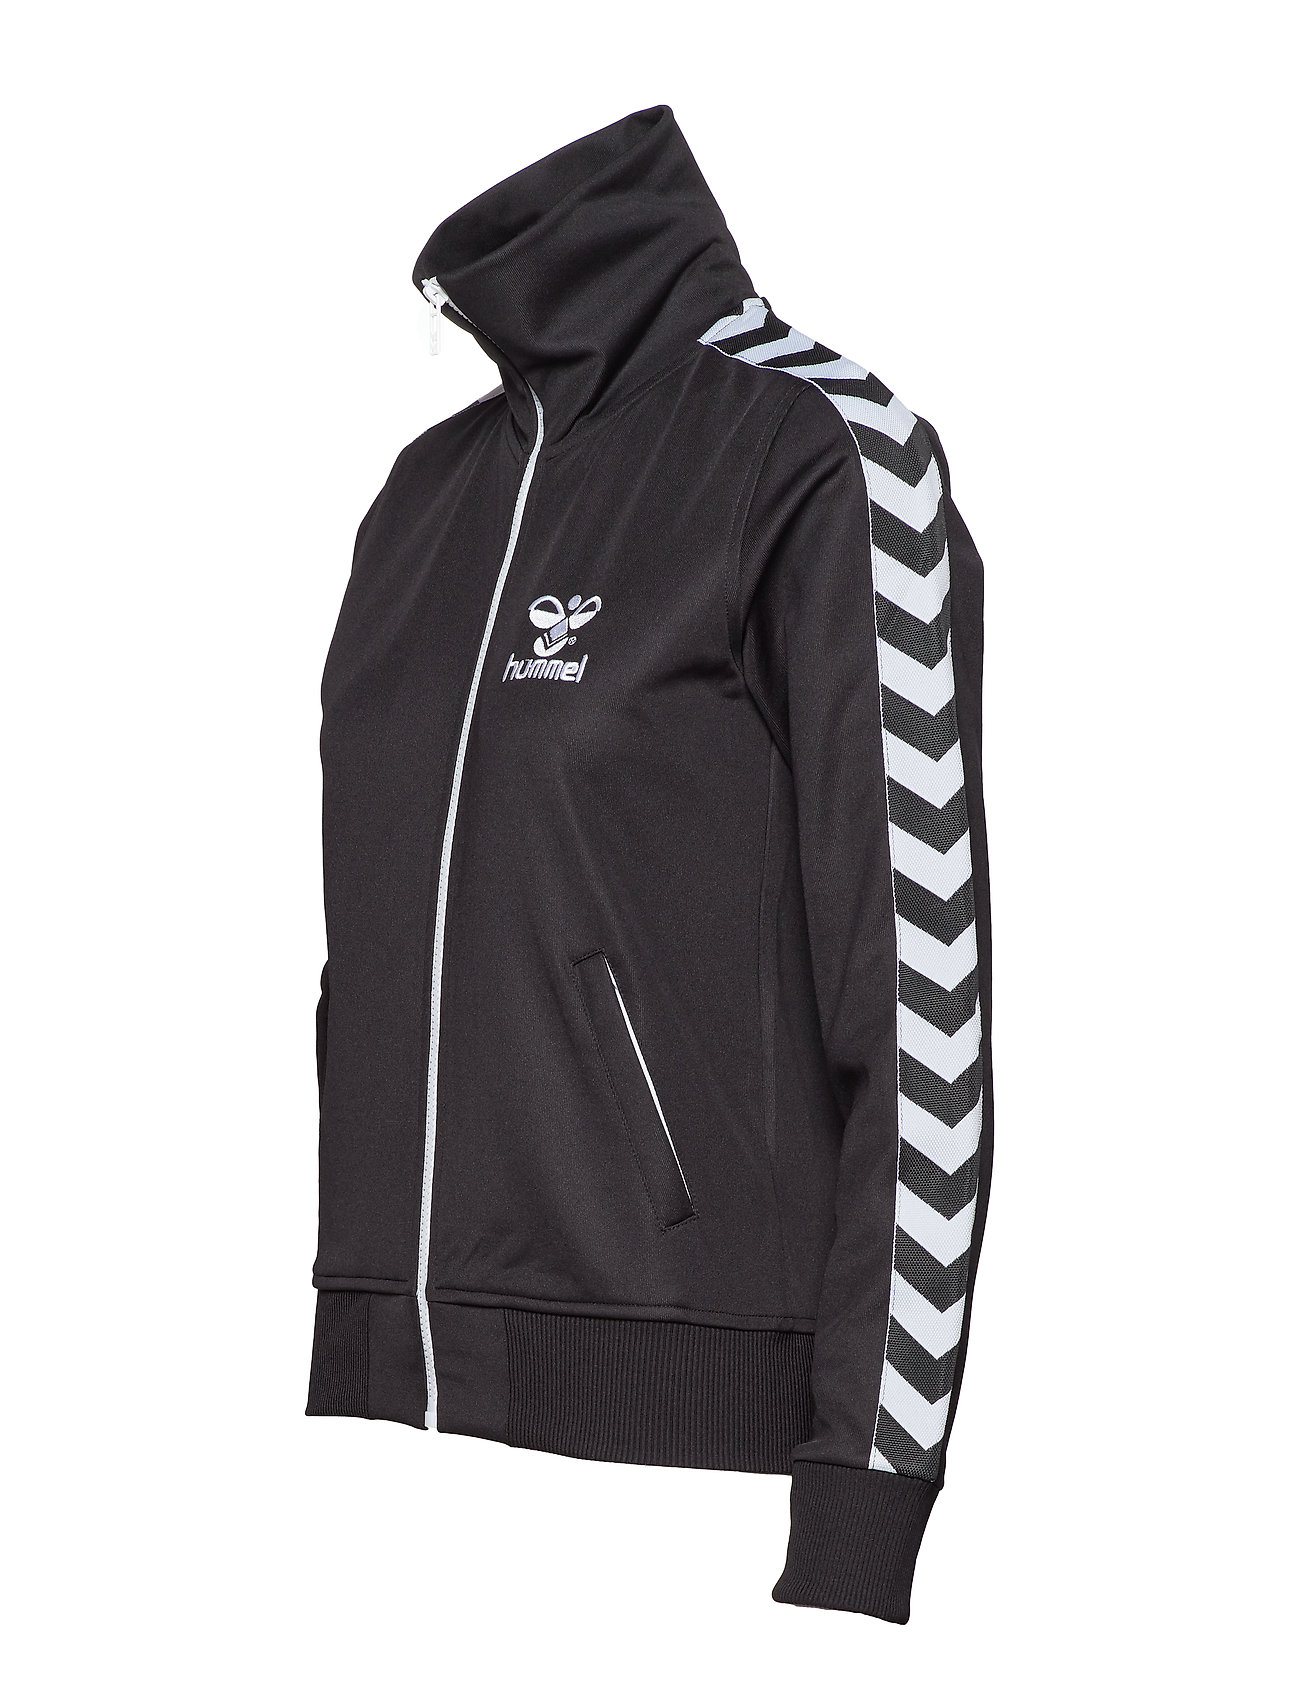 Nblack white Atlanta Zip whiteHummel Jacket FlKu1J3Tc